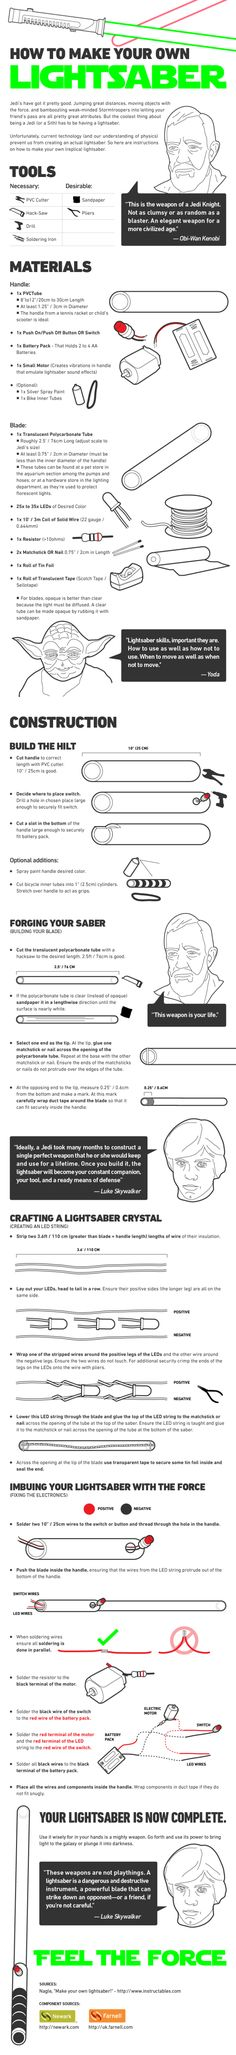 Instructions de montage d'un sabre-laser #starwars